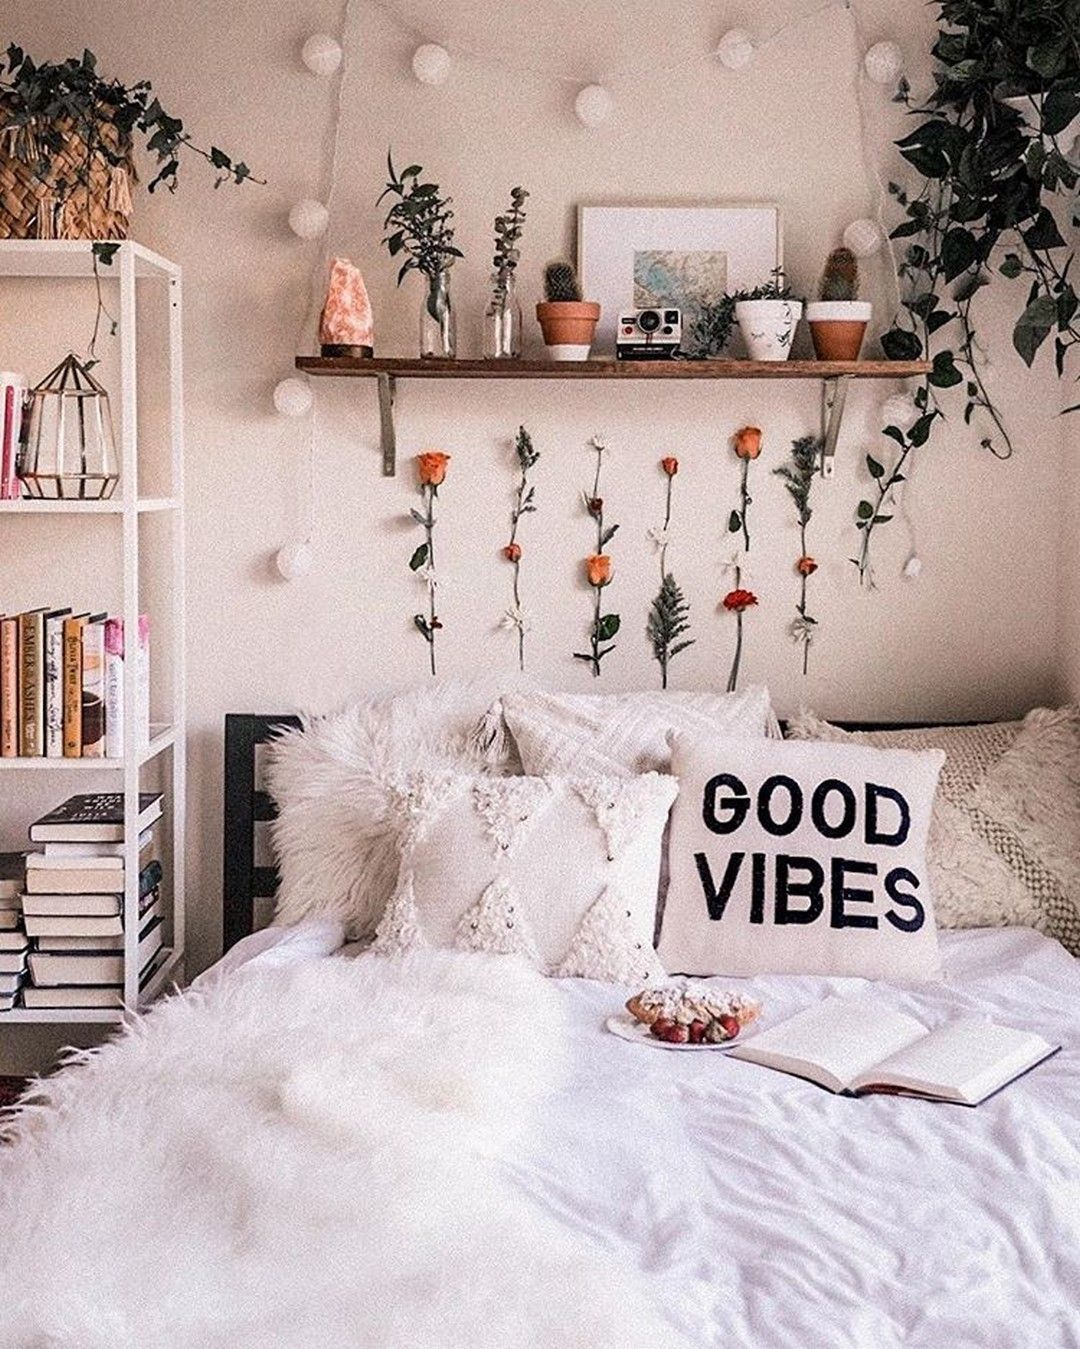 23 Cute Dorm Room Decor Ideas On This Page That We Just Love #roominspo